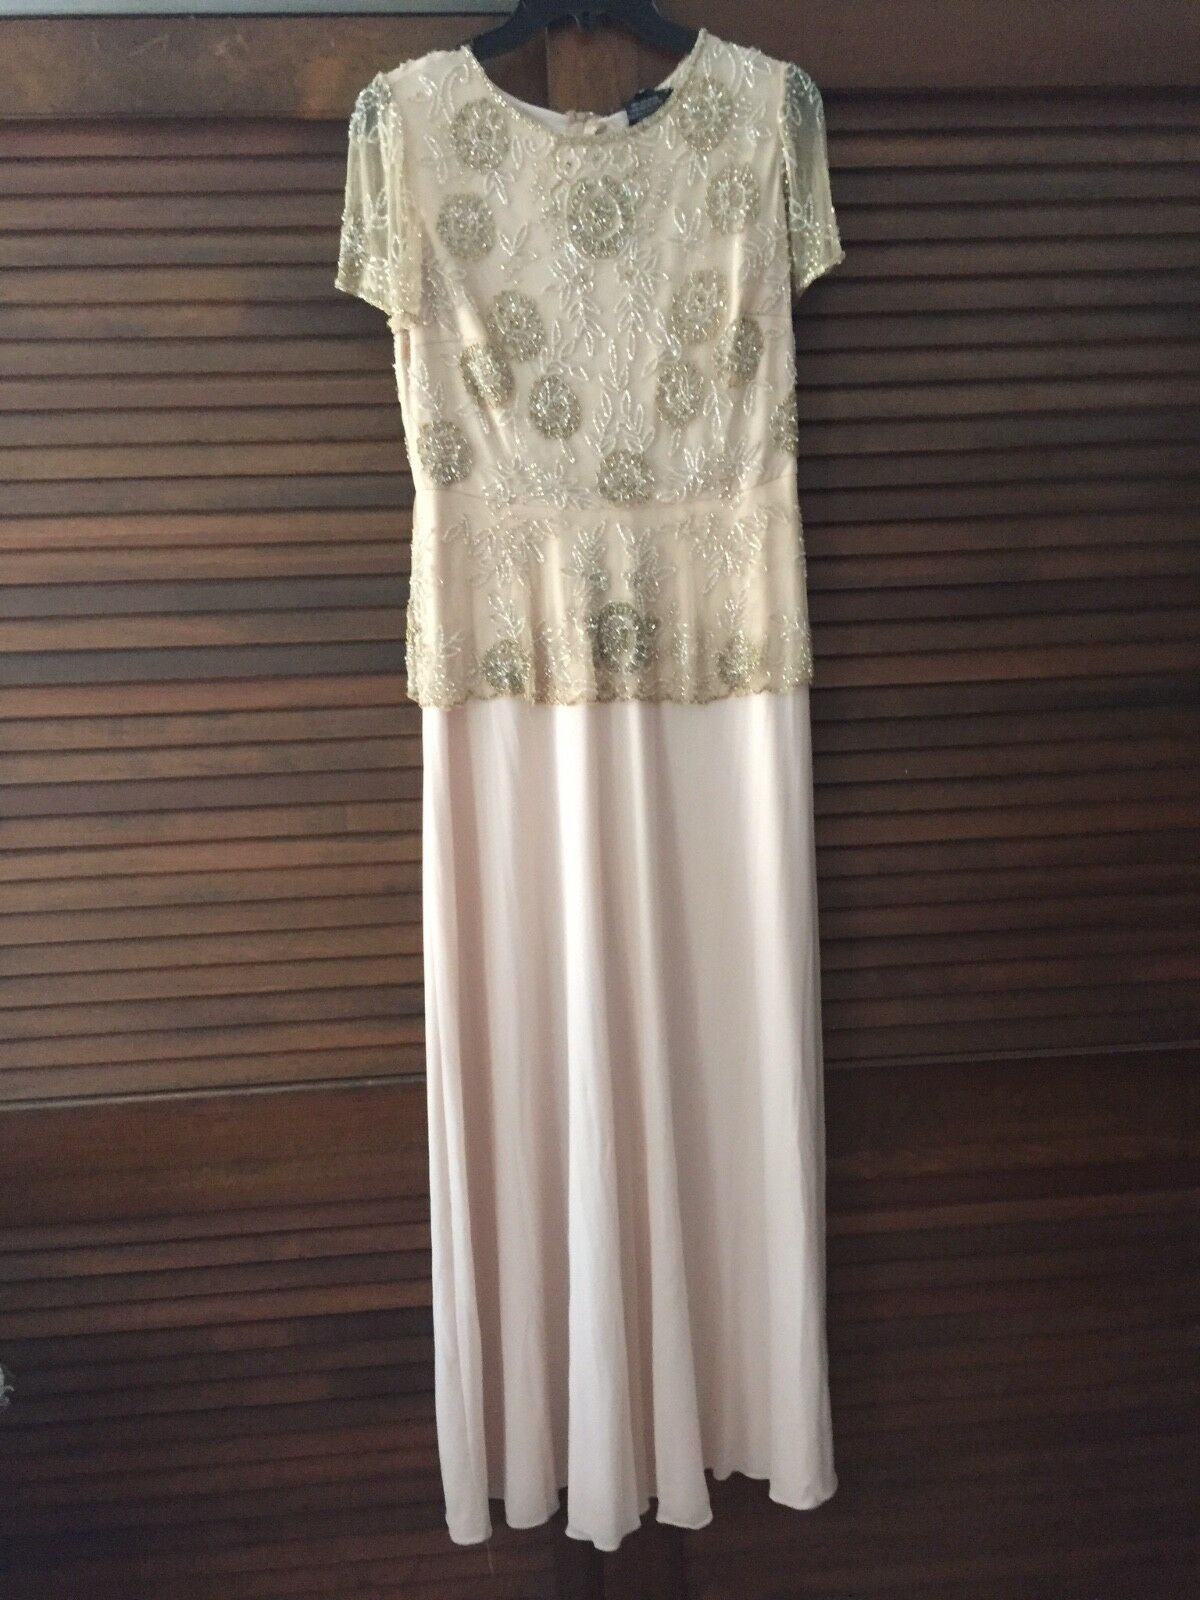 Mother of the Bride dress. Worn once. Size 6. Wrinkle free. Beautiful beading